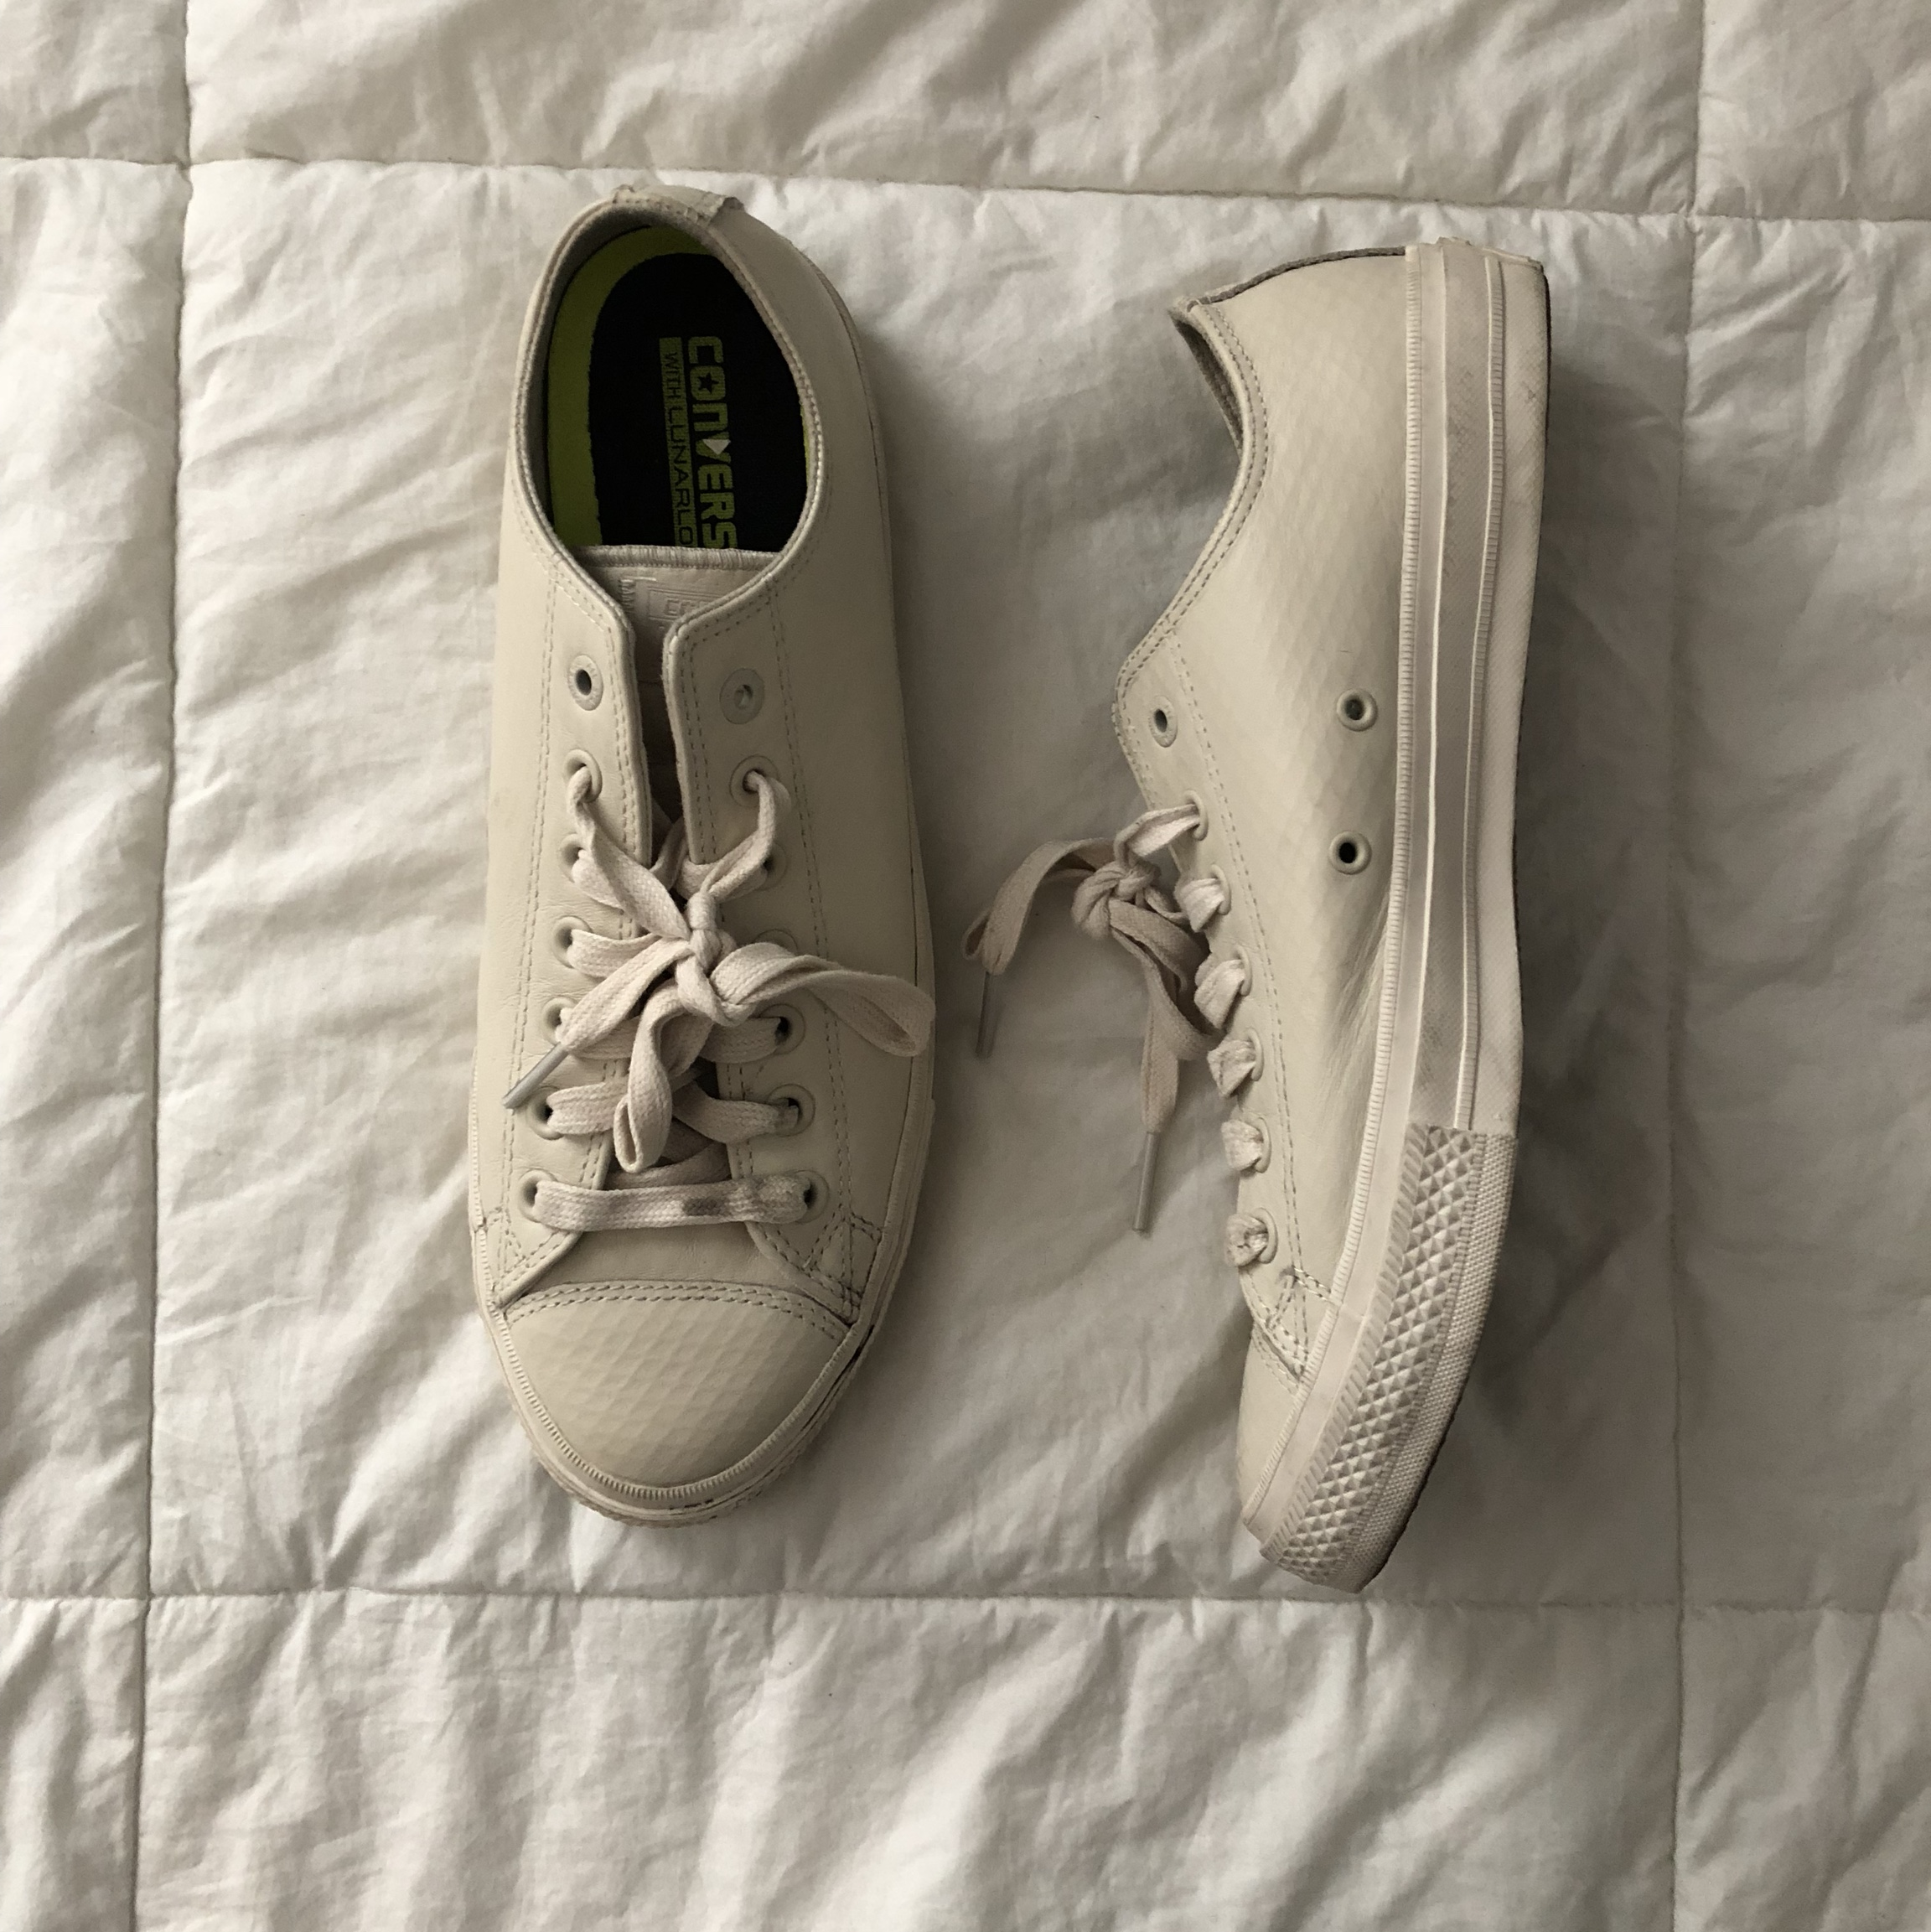 Converse Chuck Taylor II, white leather. Size 10. Depop